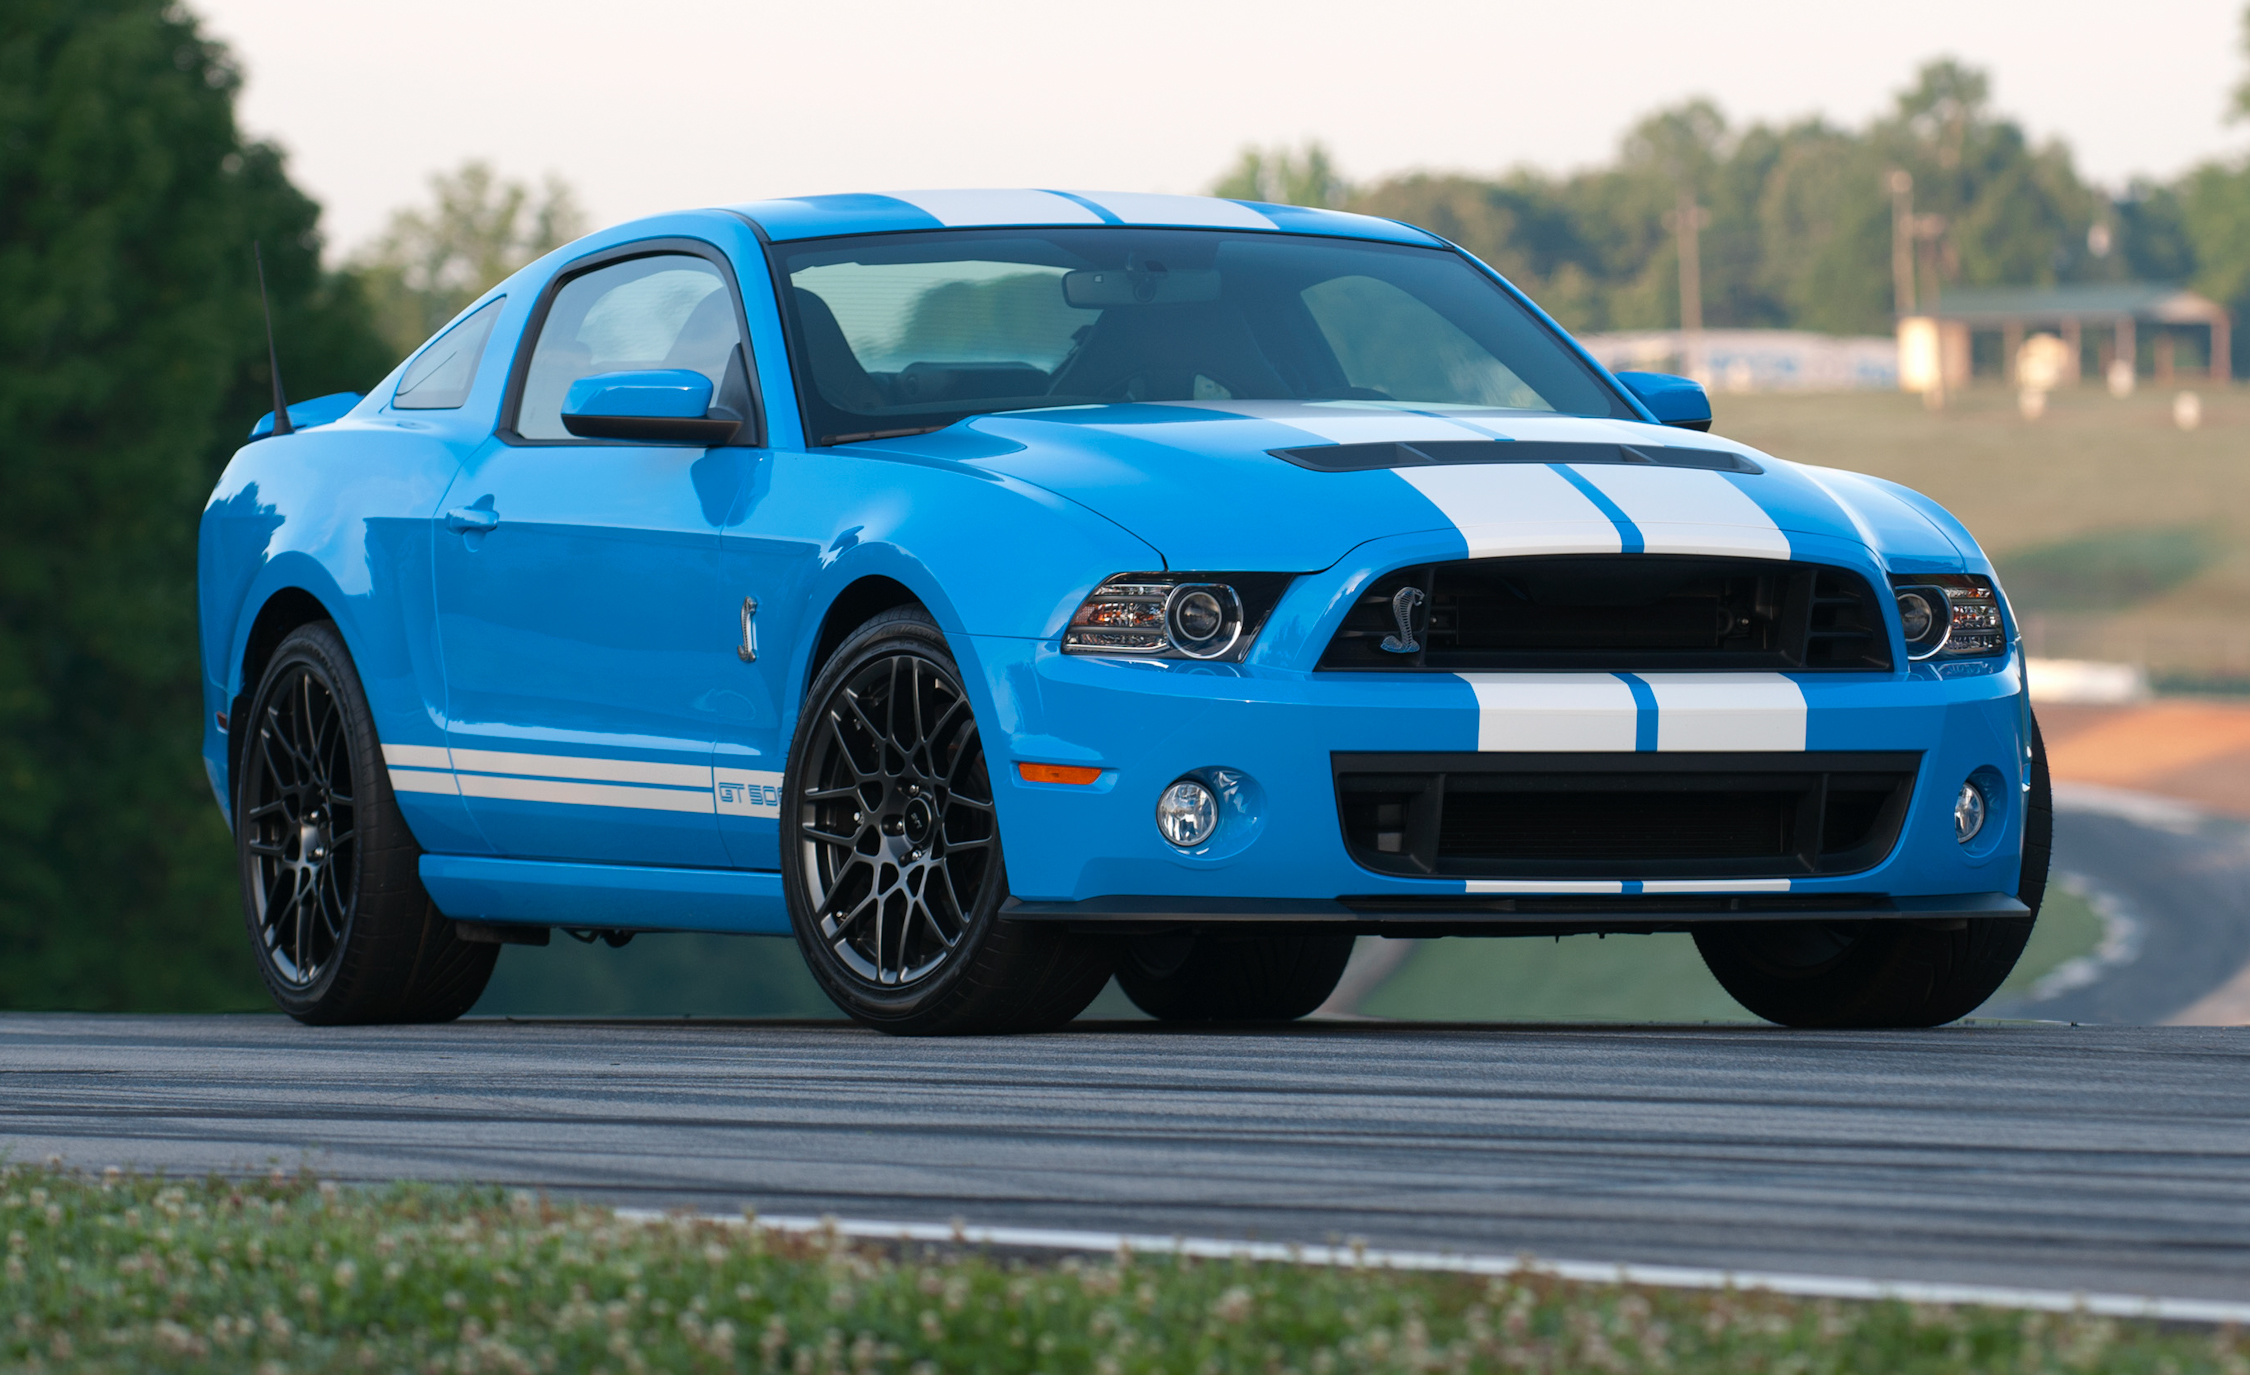 2013 Ford Mustang Shelby GT500 Blue Exterior (View 36 of 47)